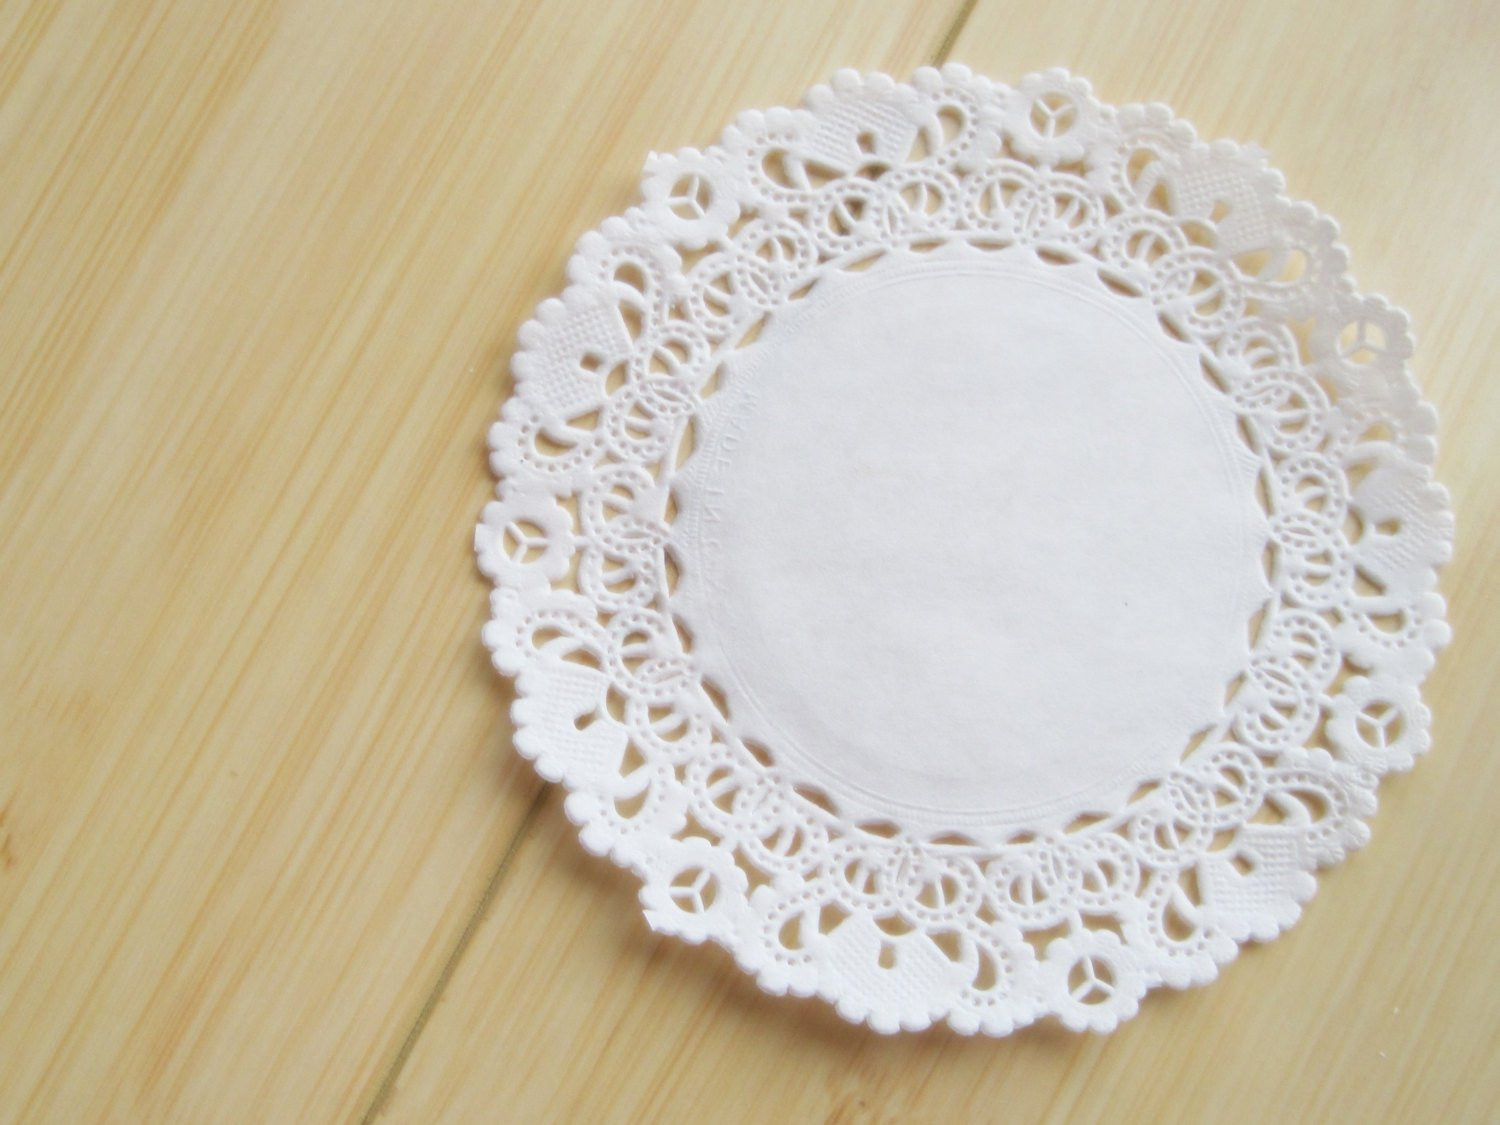 50 white paper lace doily doilies 4 inch